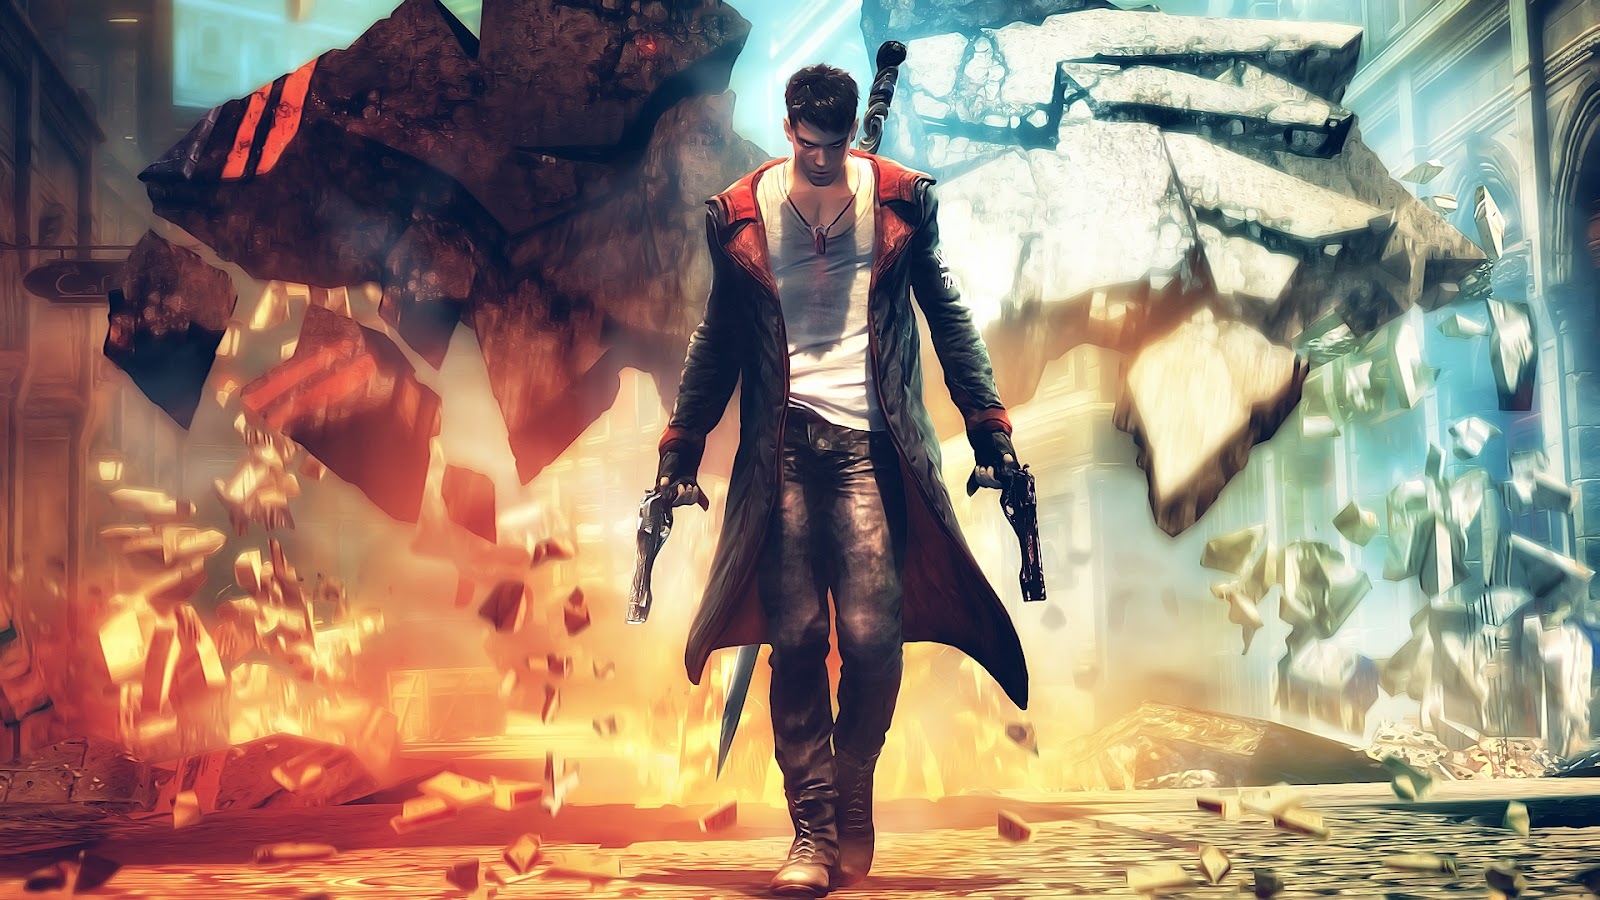 devil may cry wallpapers 1 hd 1080p Devil May Cry 5 Wallpapers in HD   1080p